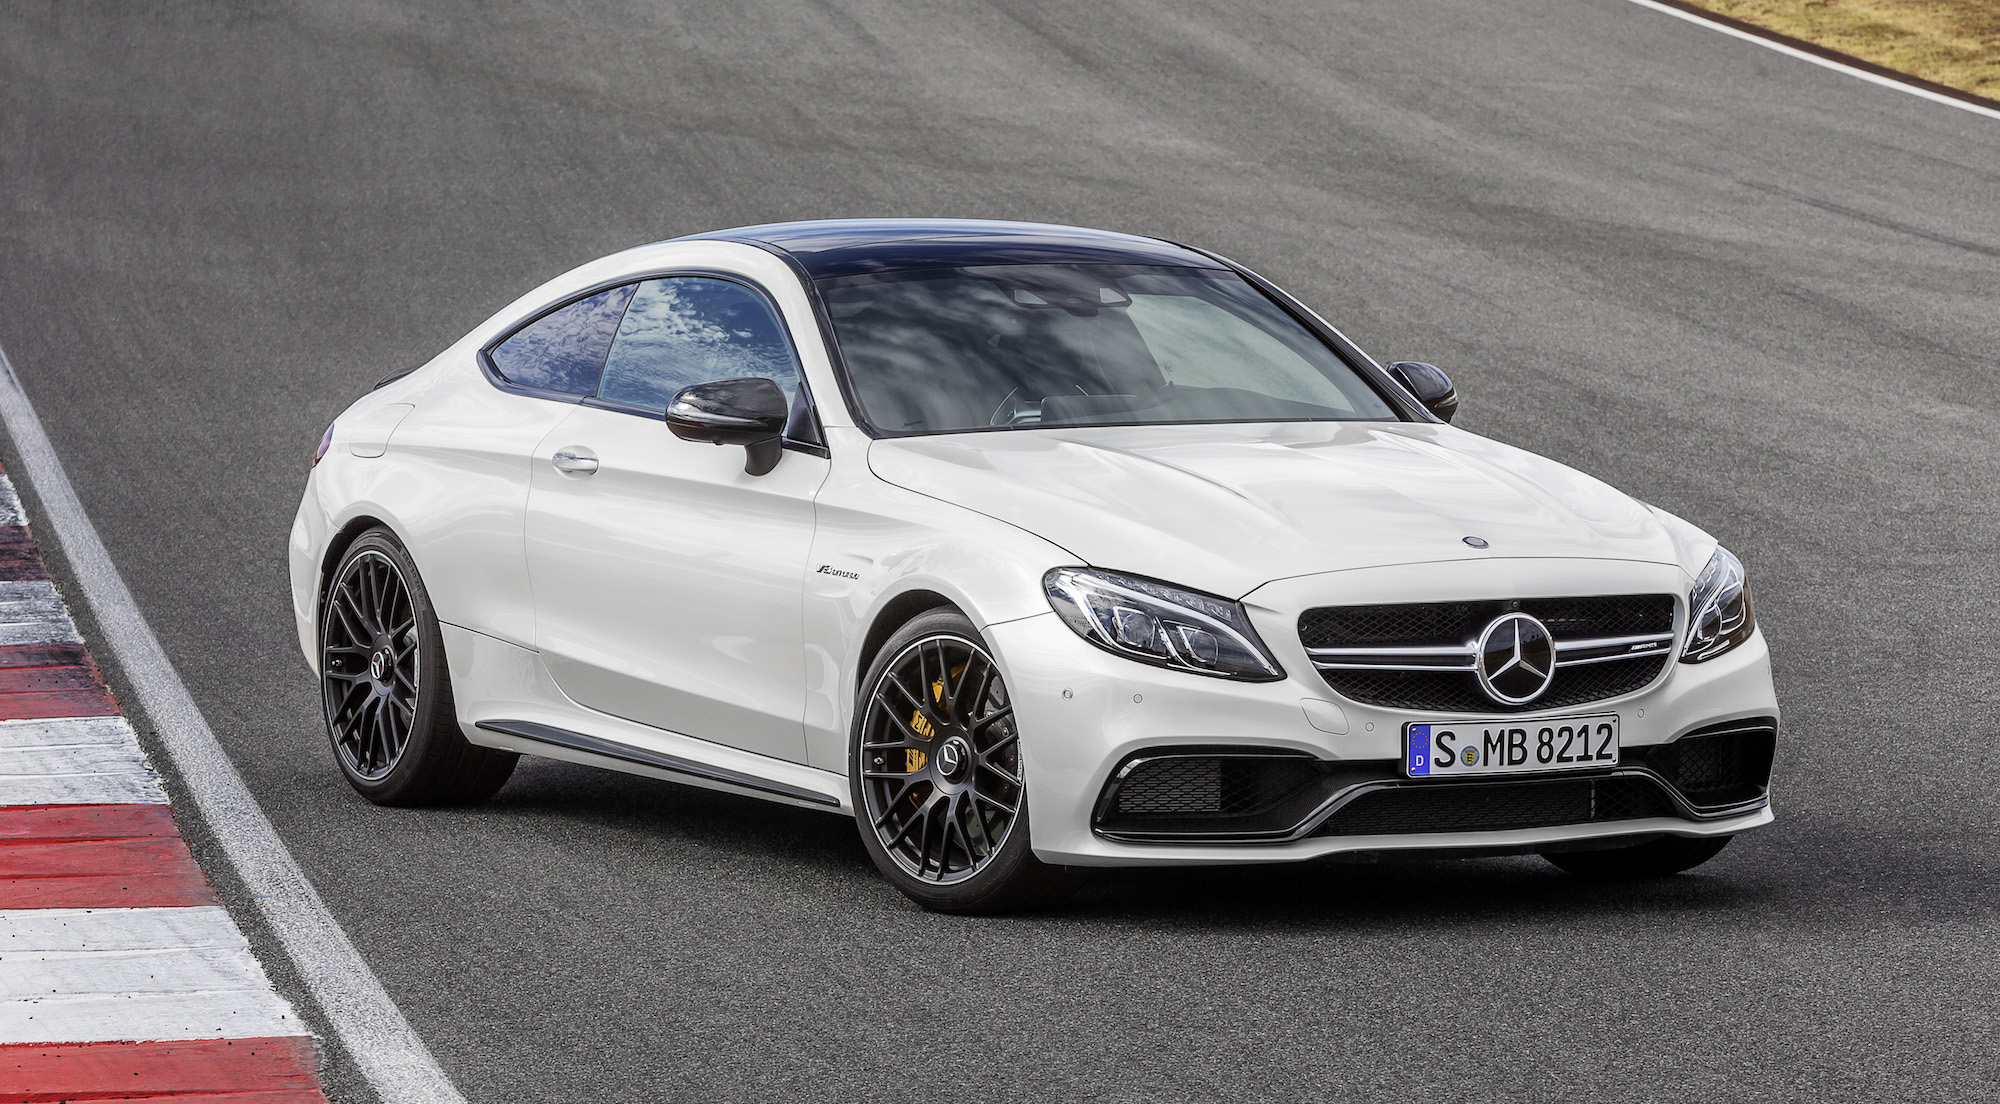 2016 mercedes amg c63 coupe revealed photos 1 of 19. Black Bedroom Furniture Sets. Home Design Ideas